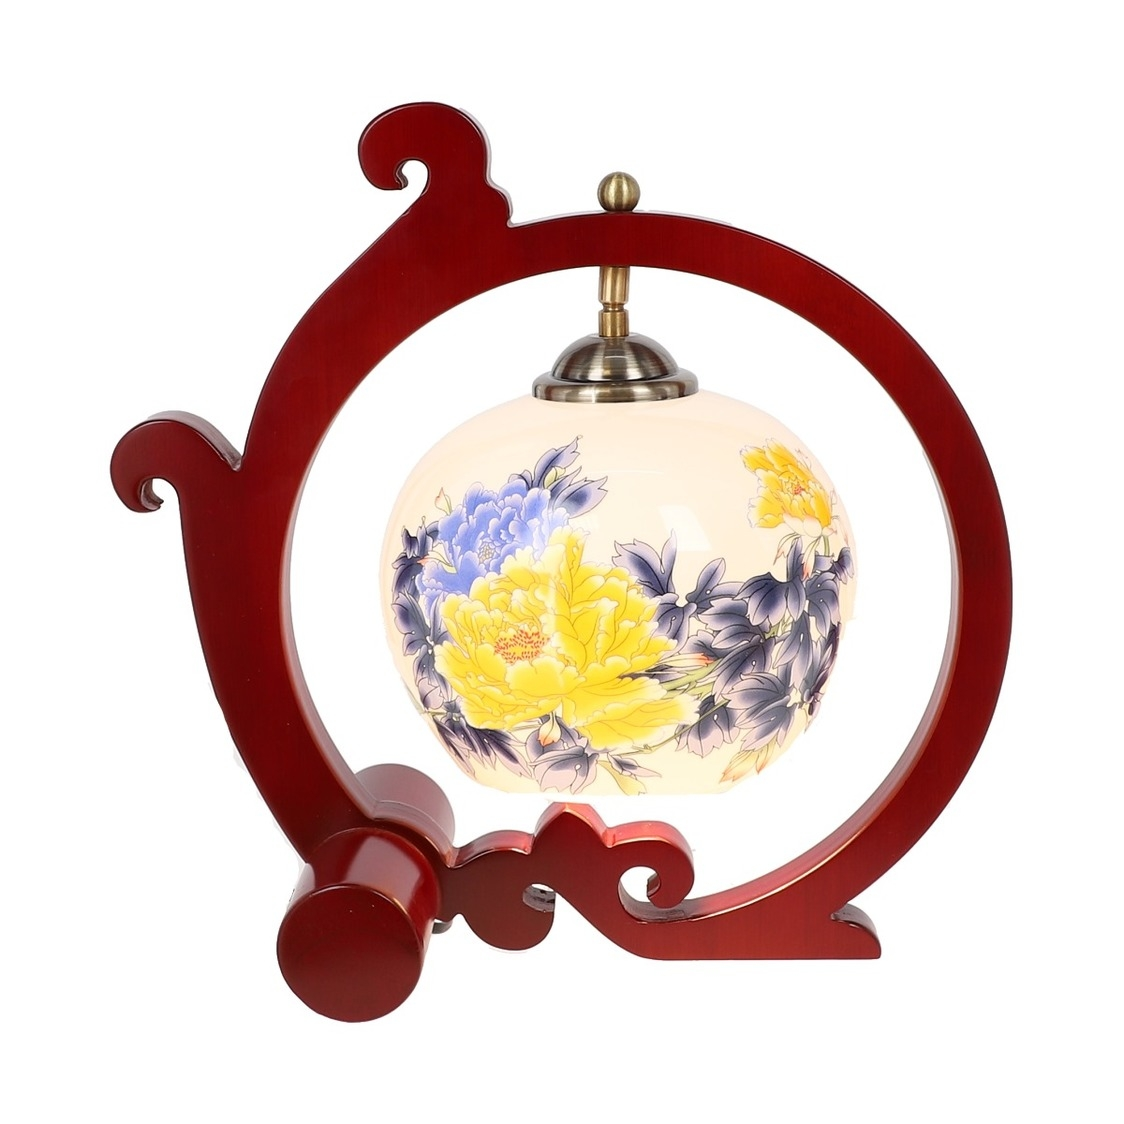 Tradition Cloud Frame Porcelain Lamp in Yellow Peonies